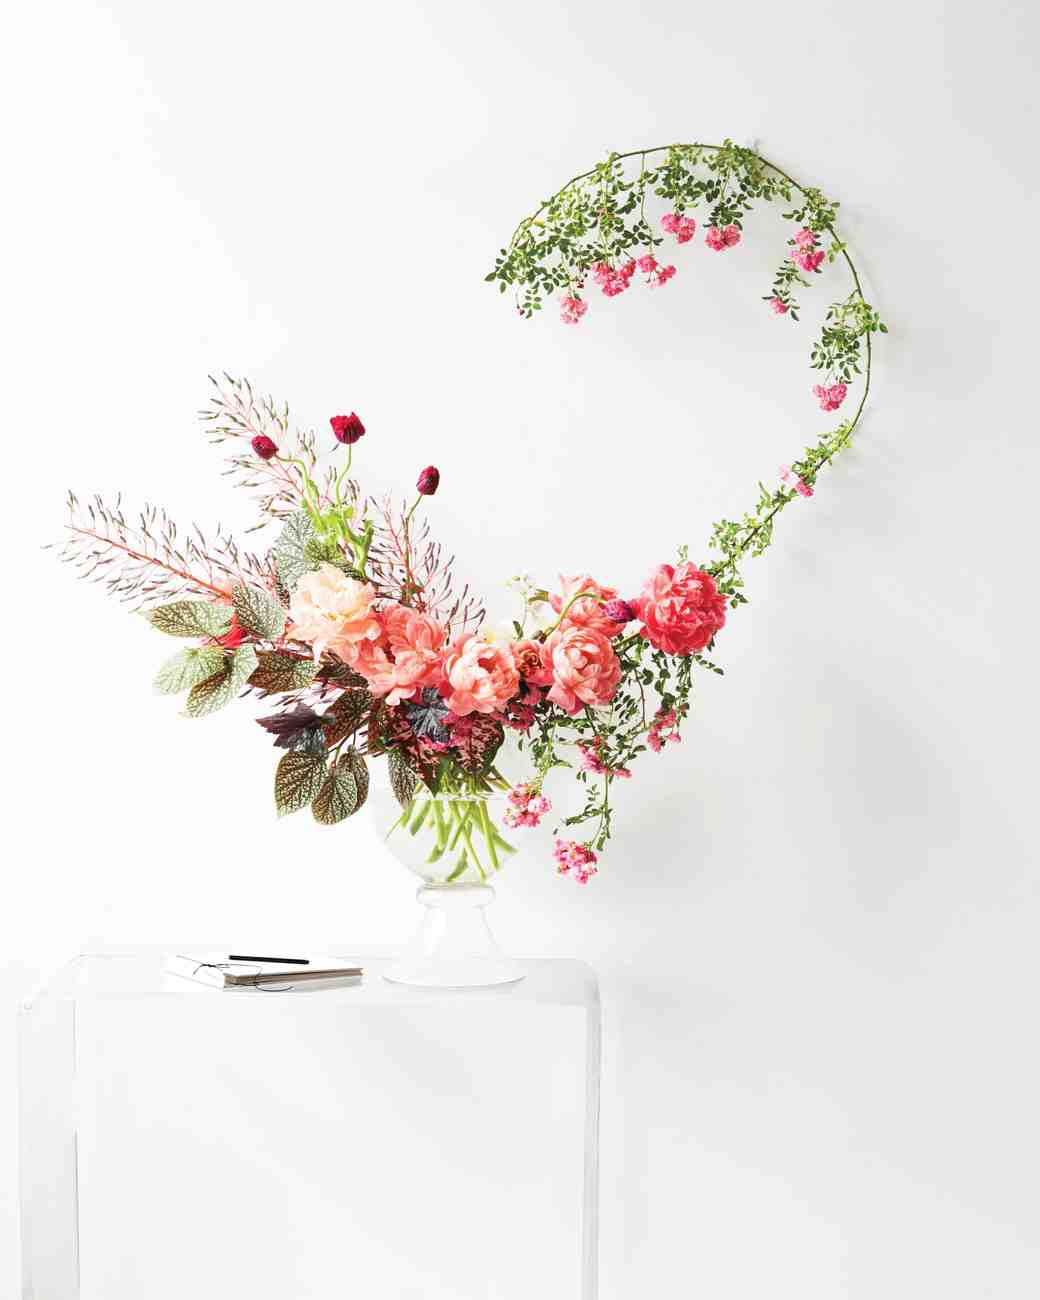 mflower-arrangement-on-lucite-table-book-174-d112266.jpg